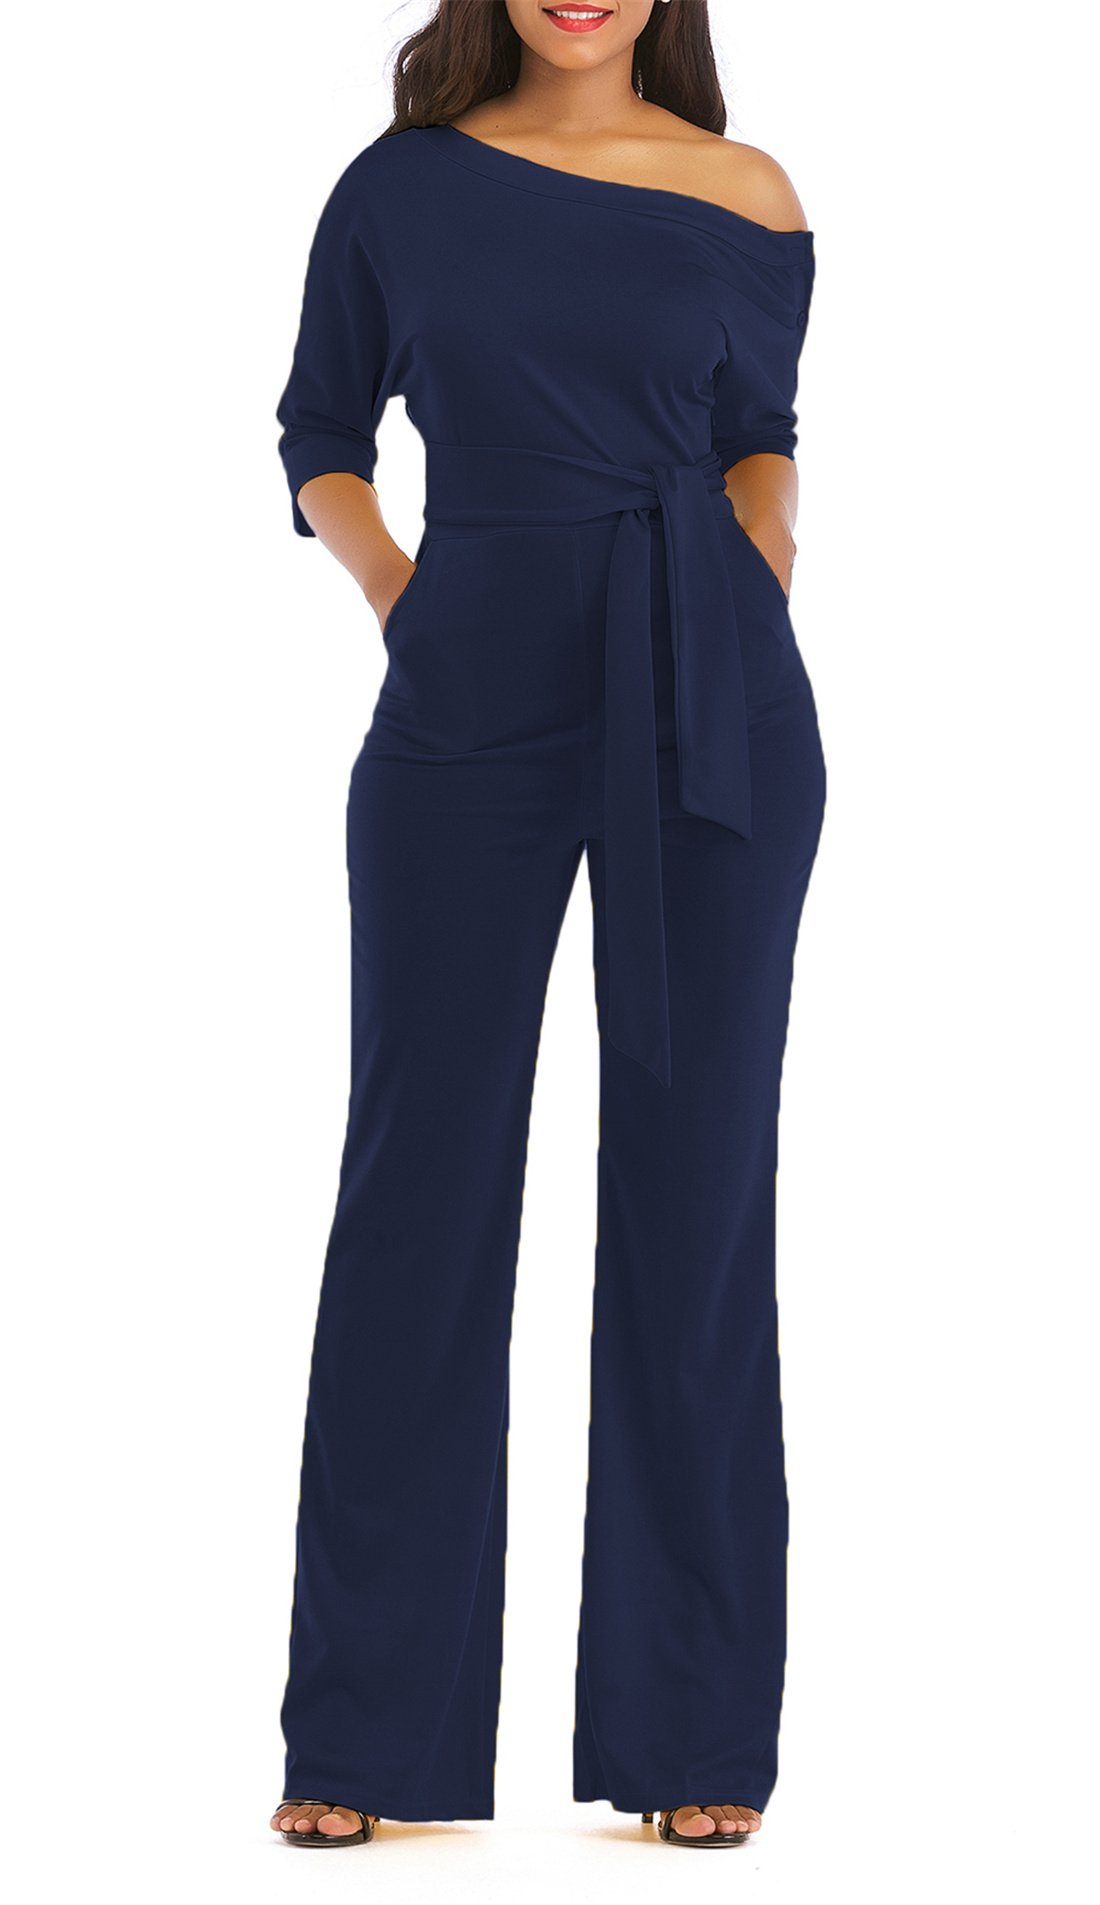 ONLYSHE Women's One Shoulder Short Sleeve Jumpsuit Rompers Long Pants Set with Belt Dark Blue Small